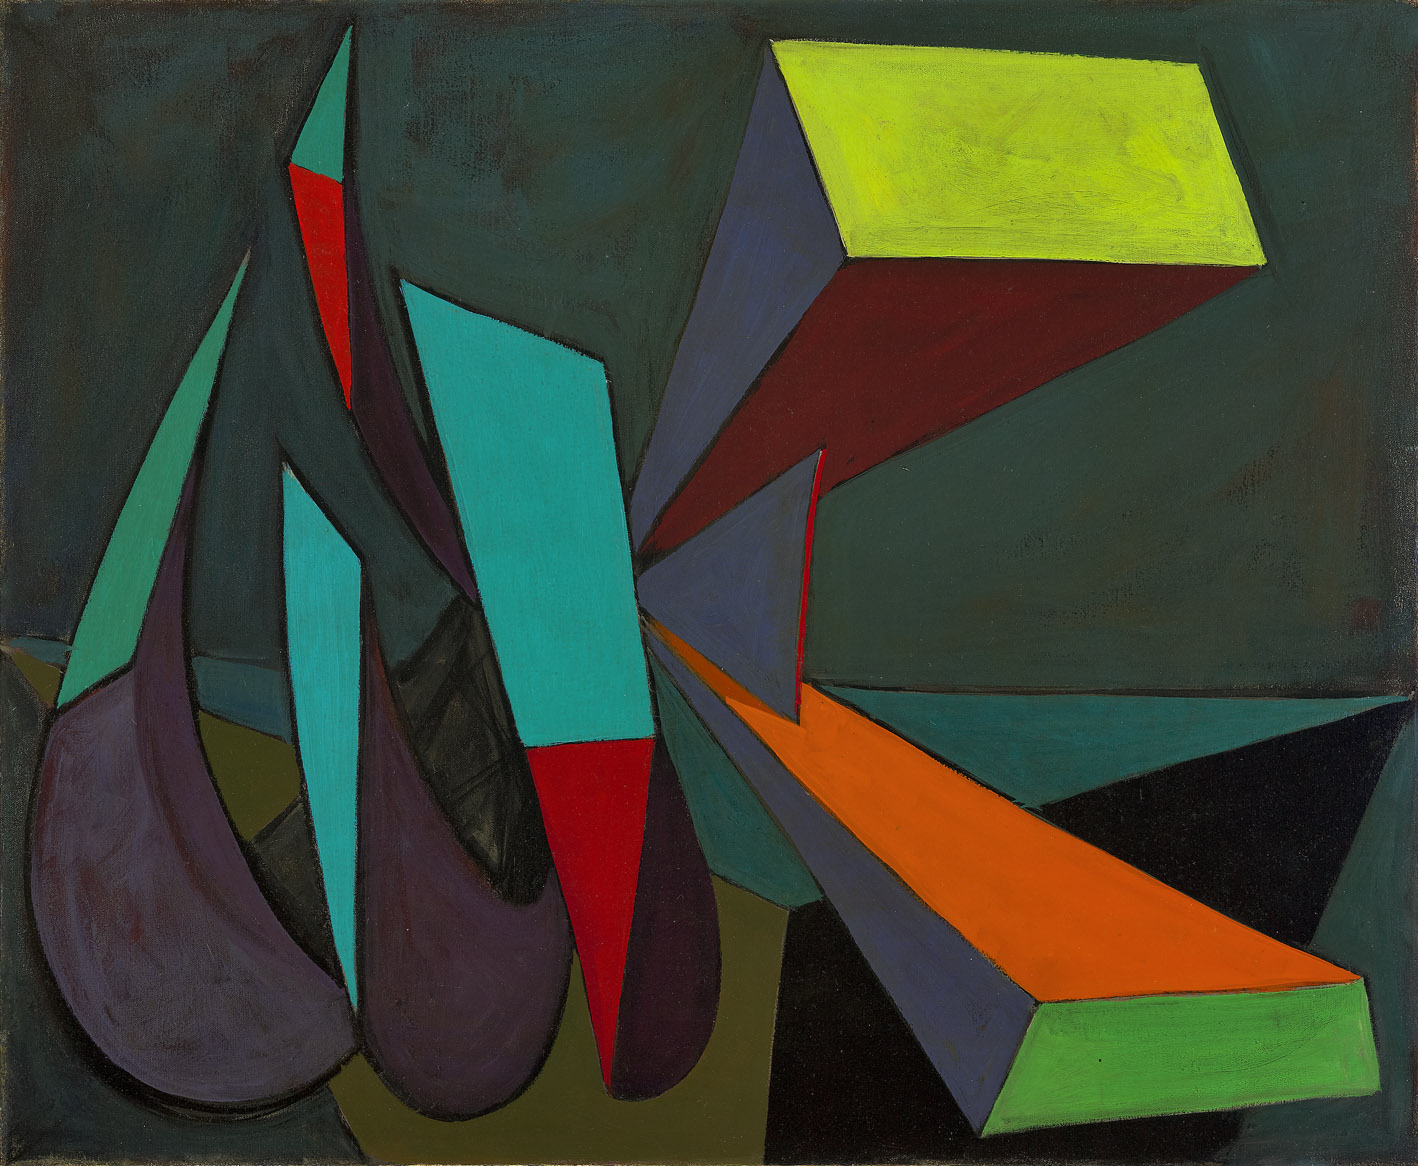 Mirabilia #2 , 1950  oil on canvas 30 x 36 inches; 76.2 x 91.4 centimeters